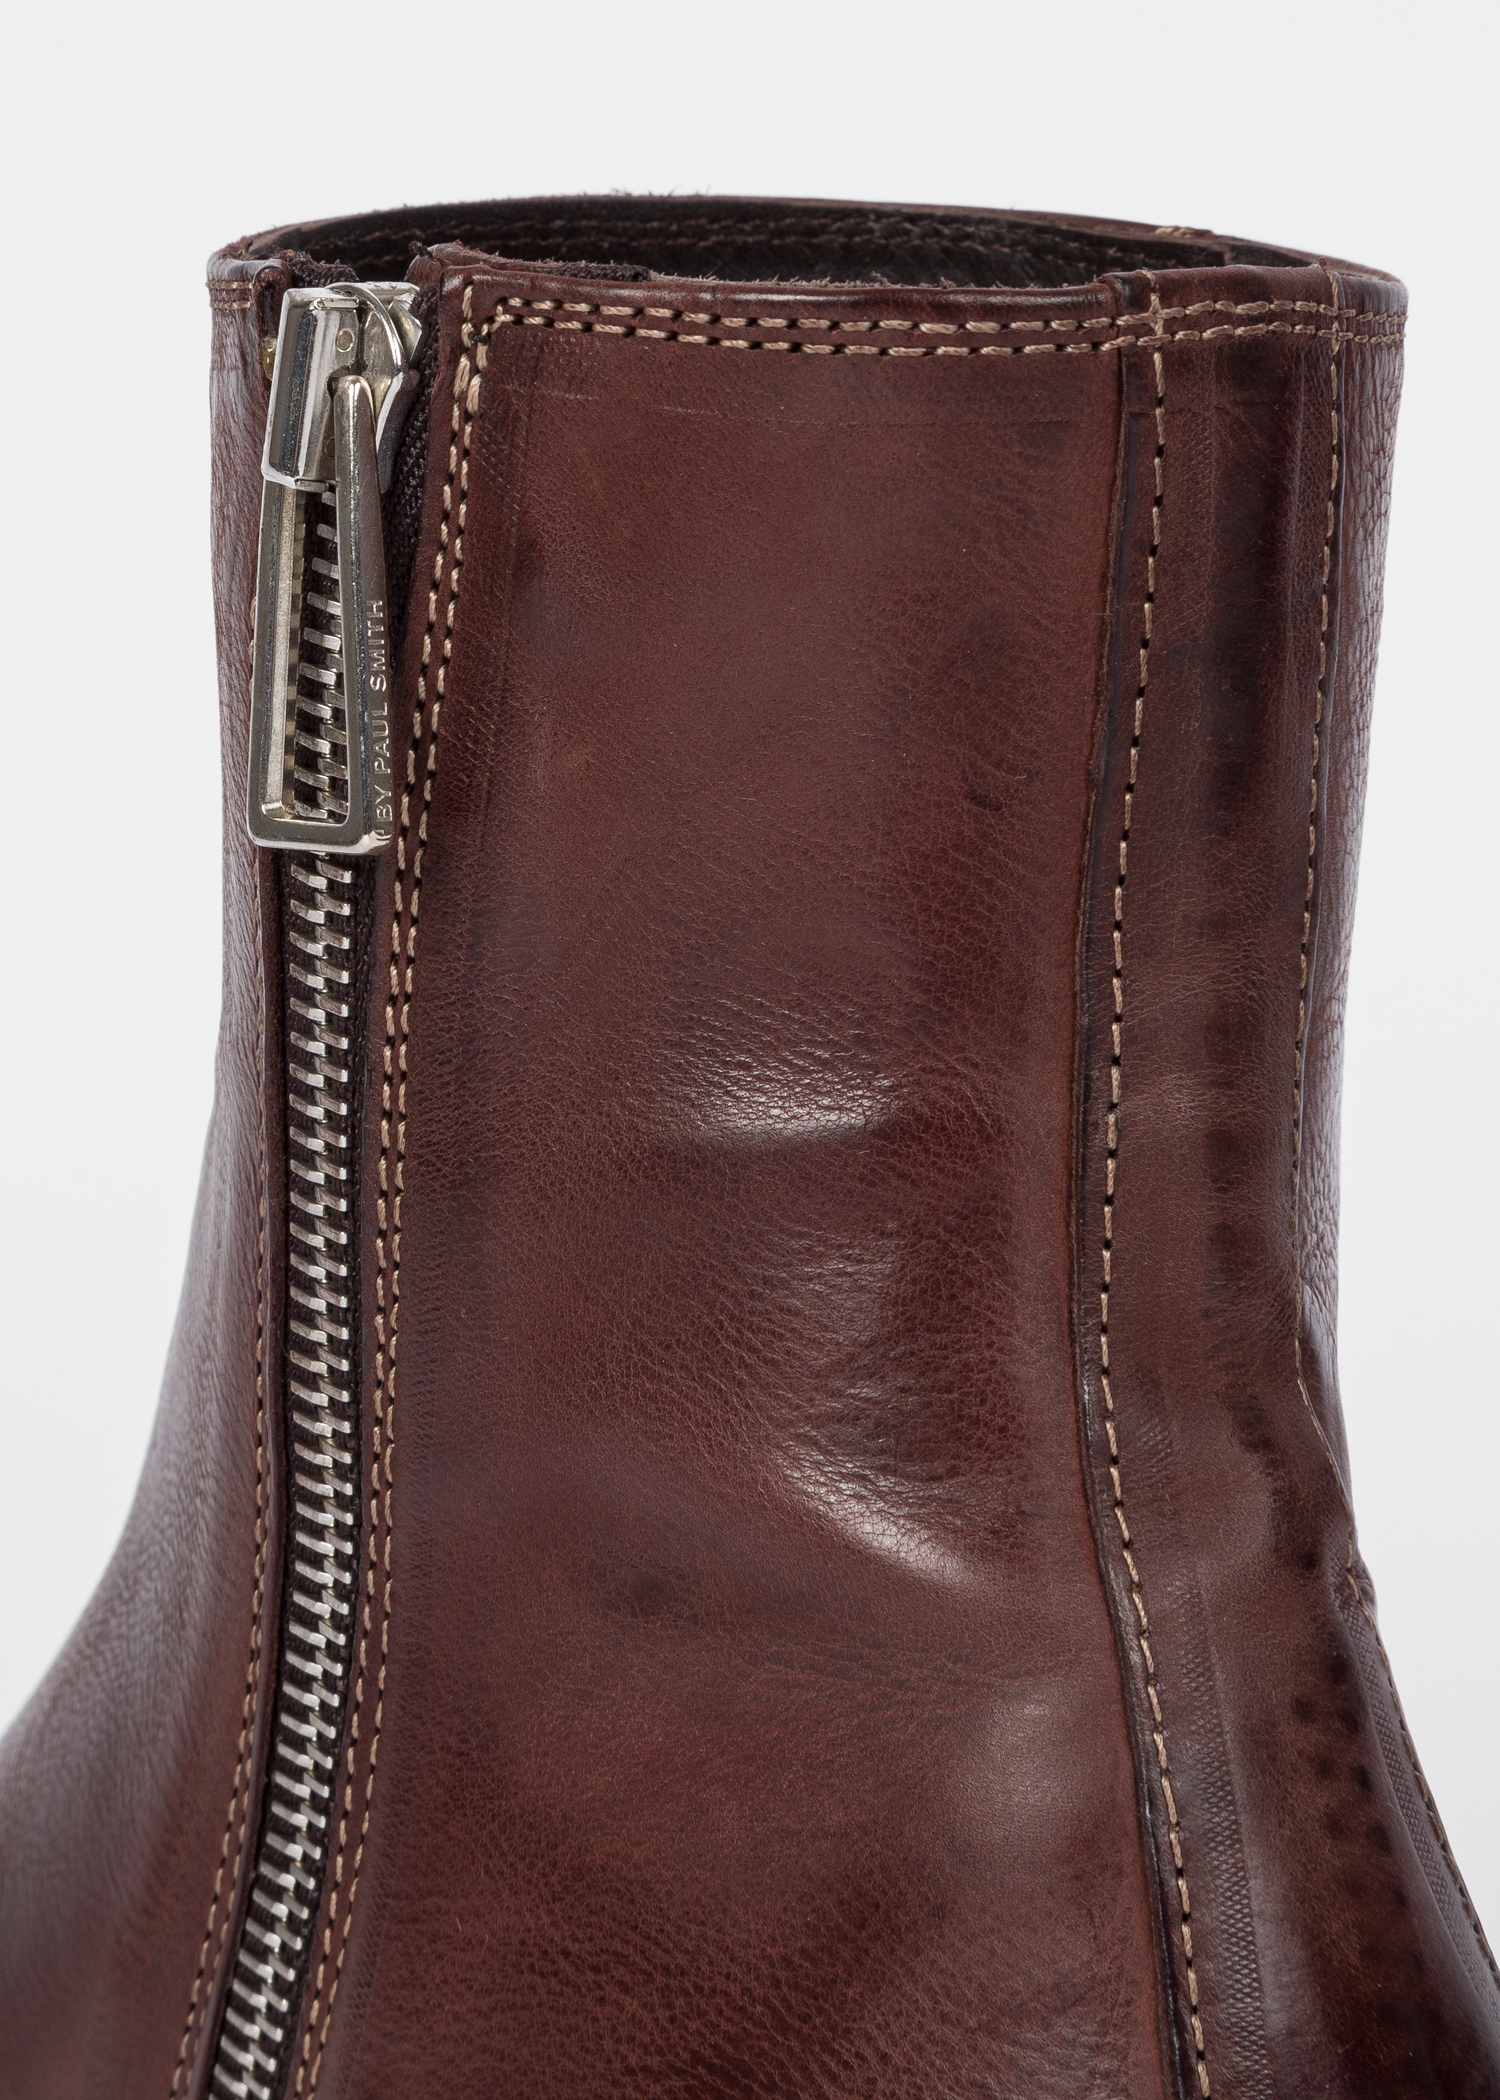 330550c8b3133 Detail view - Women s Dark Brown Leather  Adalia  Ankle Boots Paul Smith